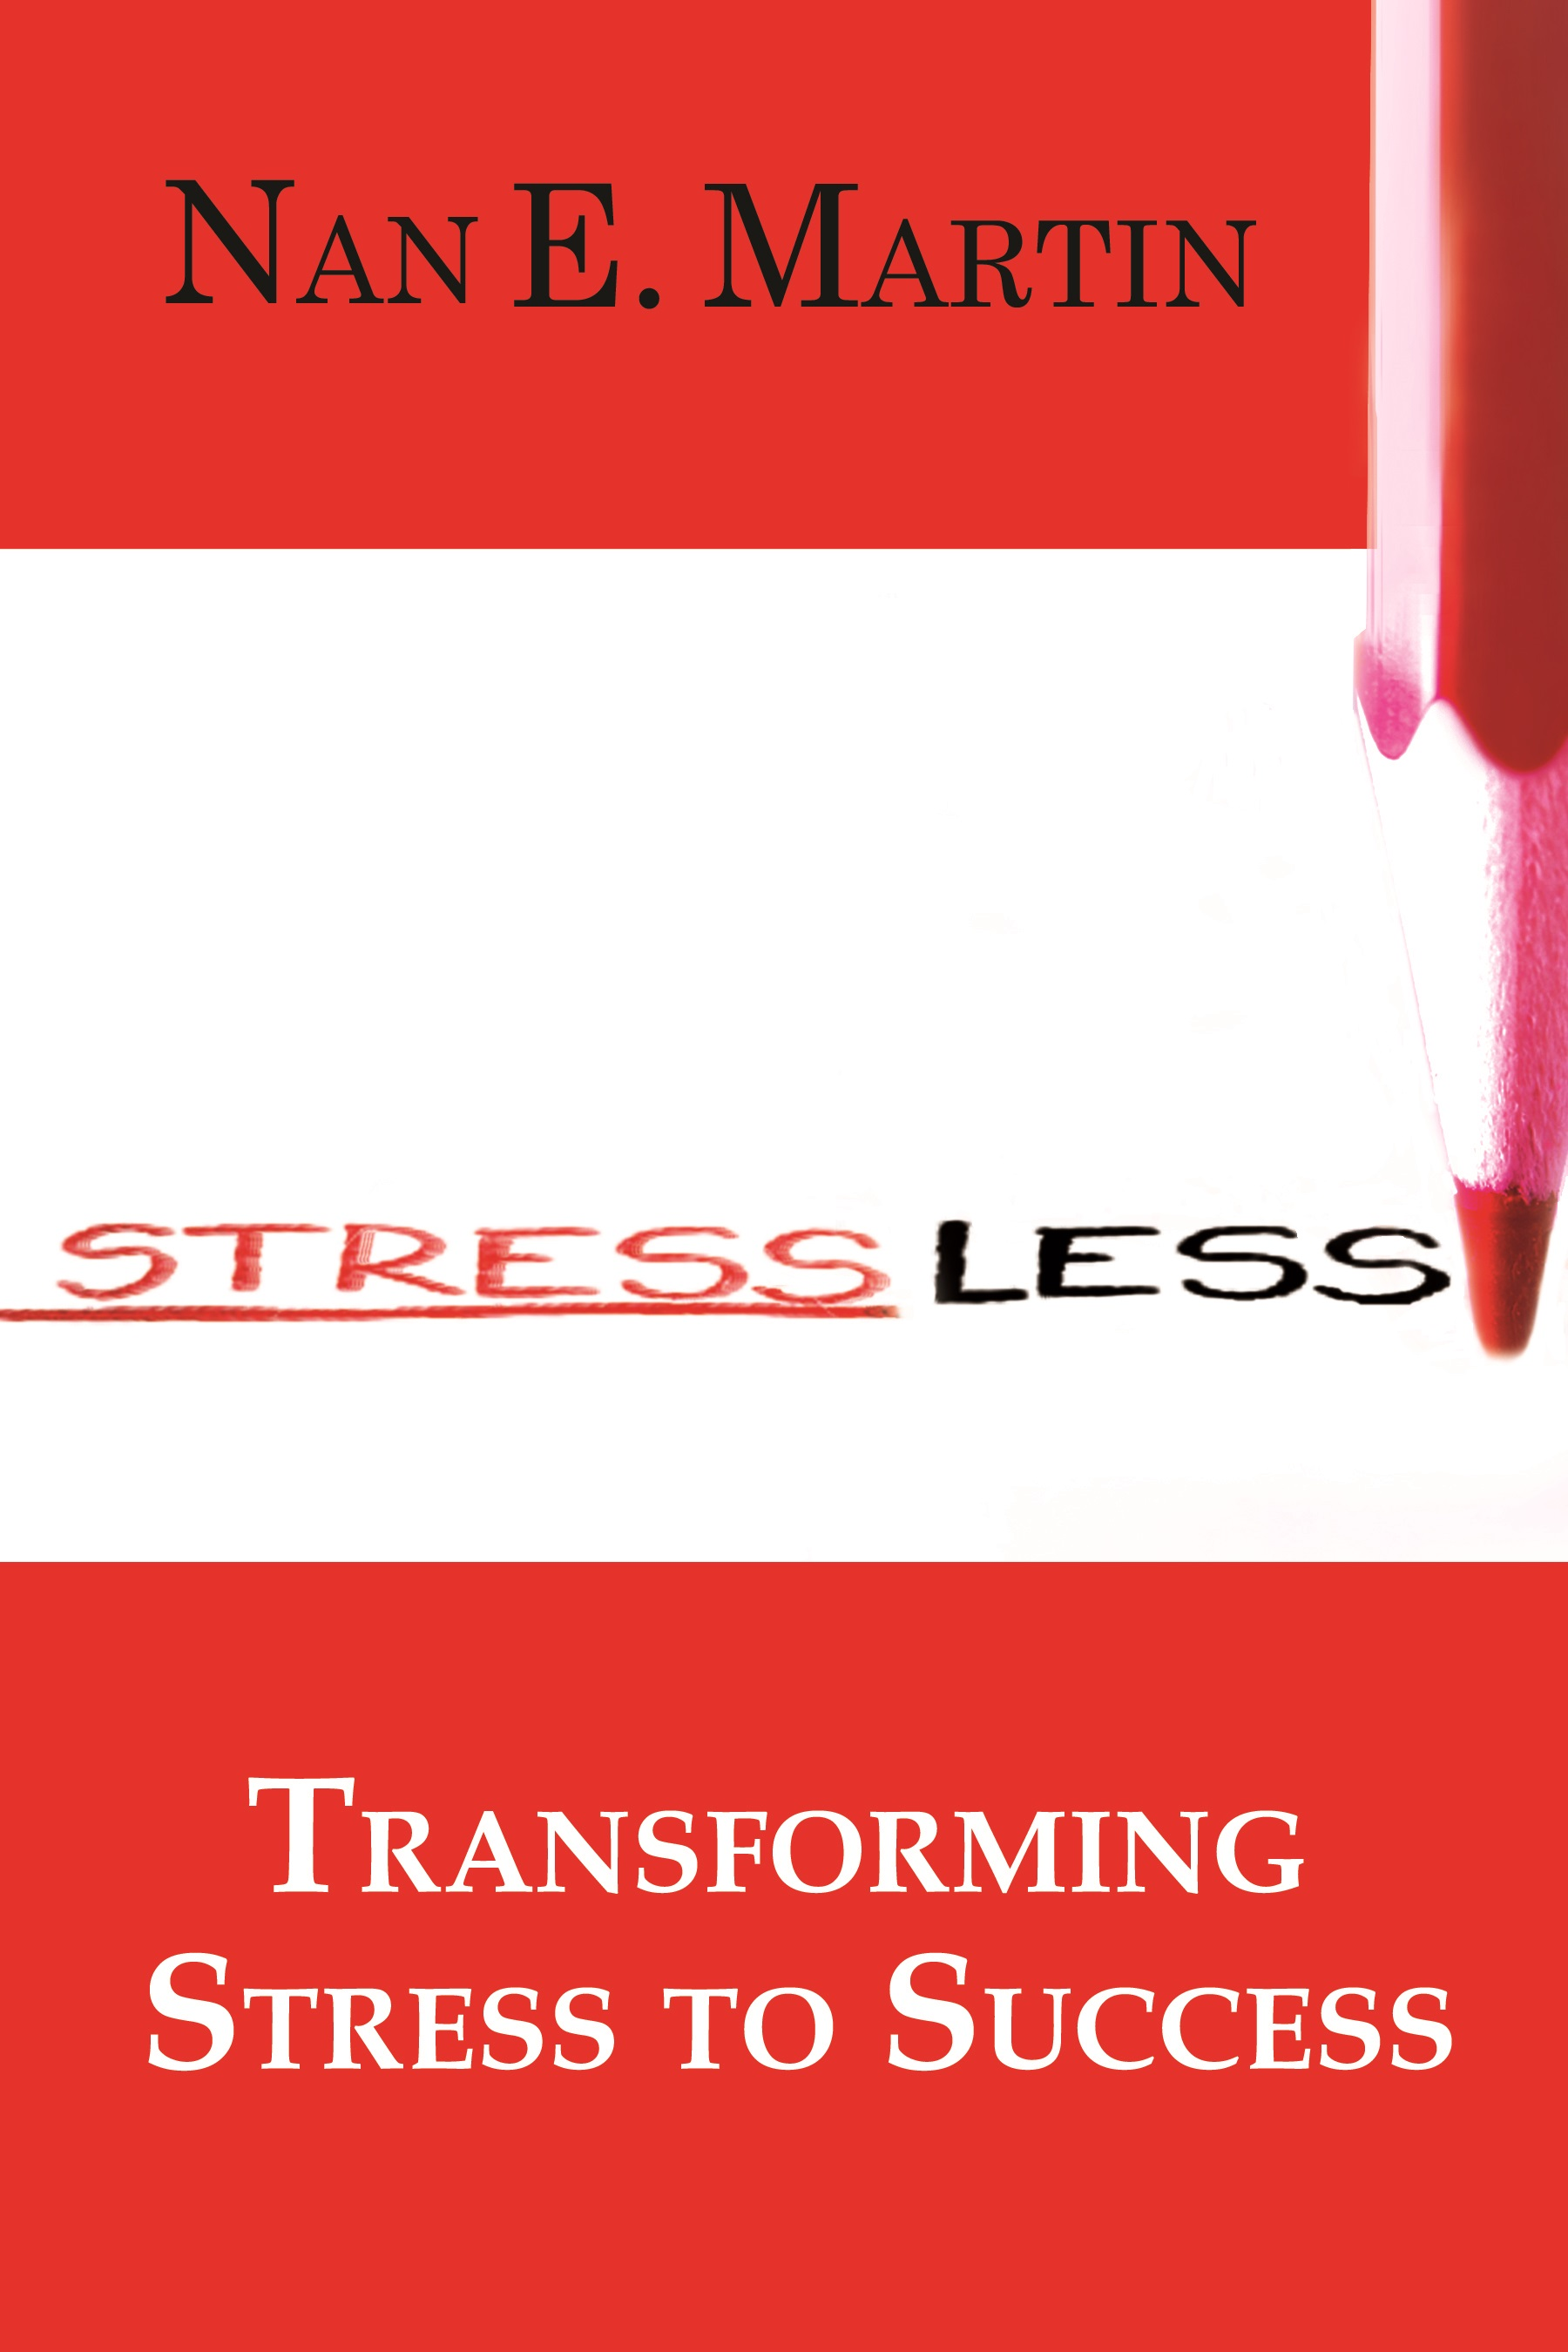 Stress Less by Nan Martin